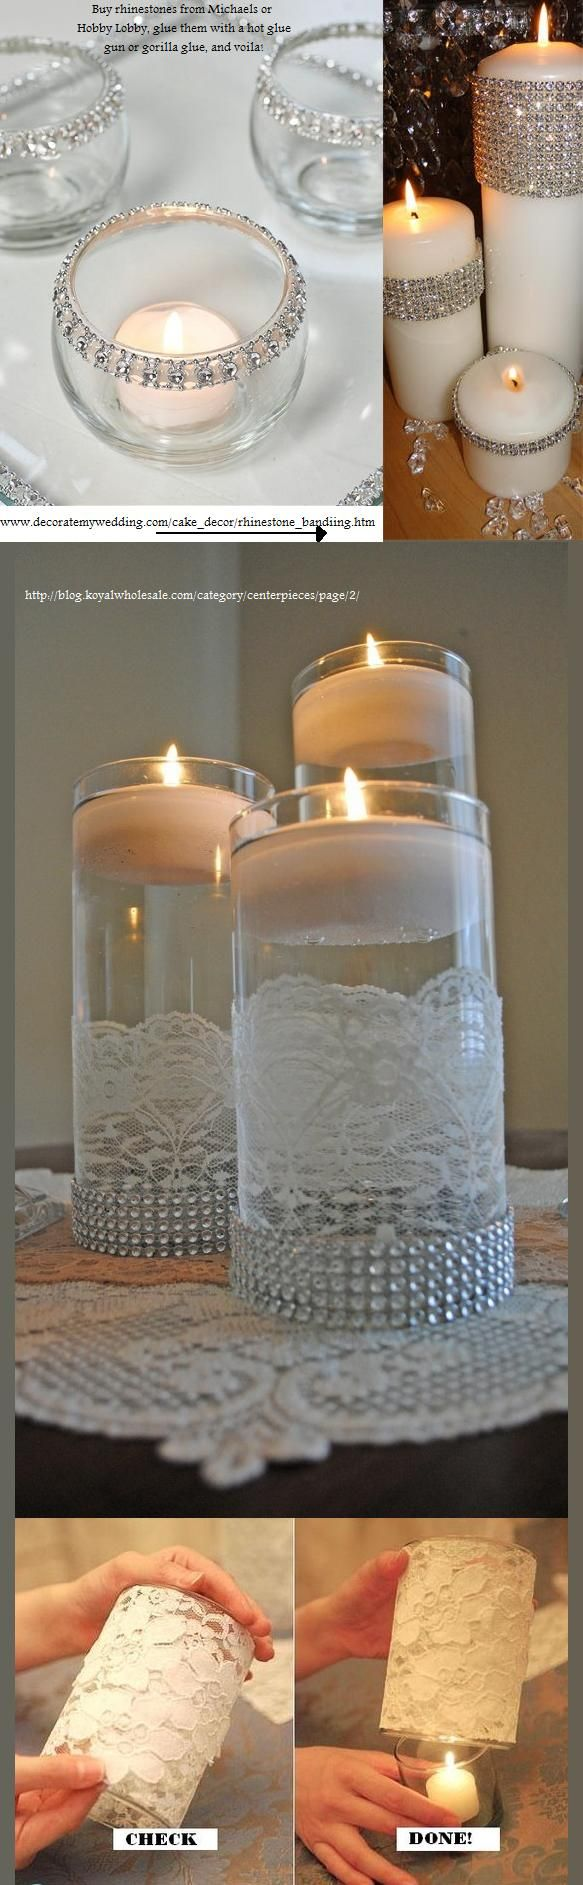 Centerpieces, Candles, Vases, Lace, Diamonds, Rhinestones, Ribbon/cute table decoration idea!